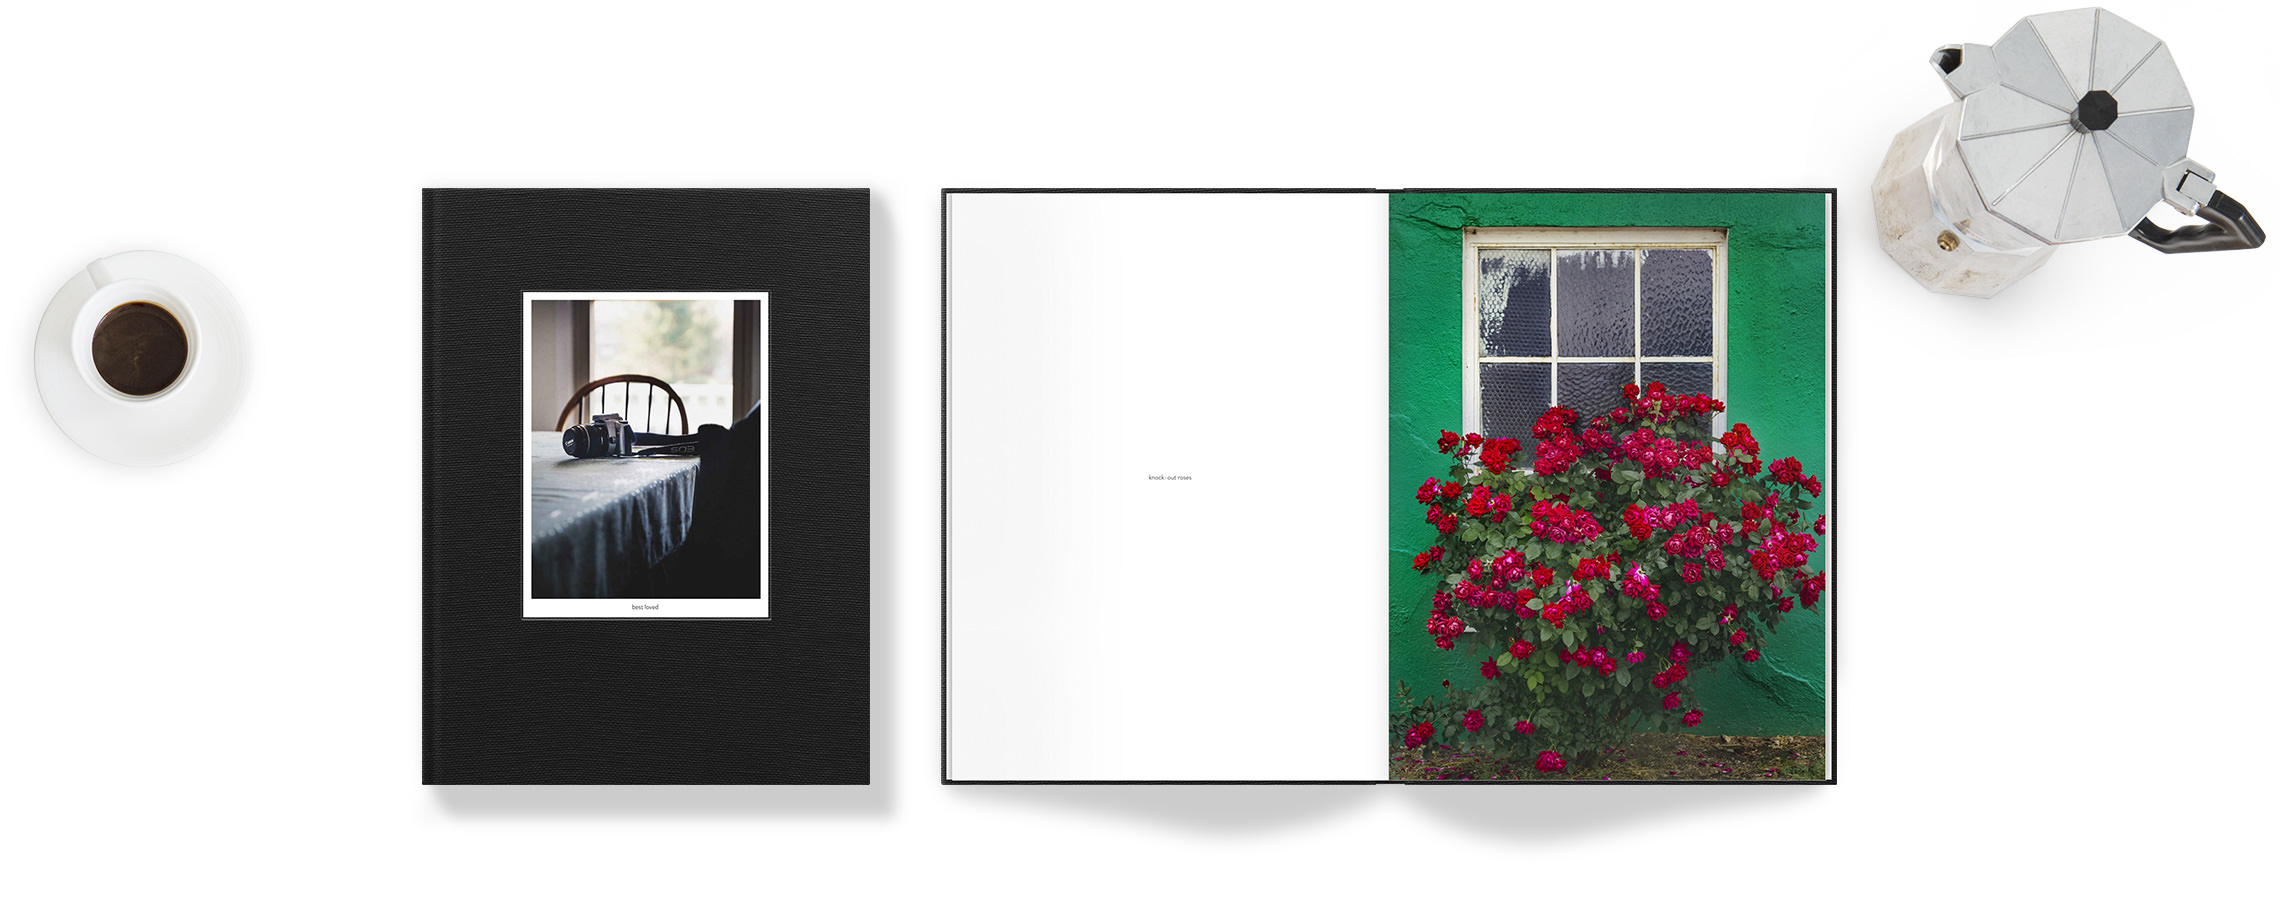 Portrait photo book with photography images.